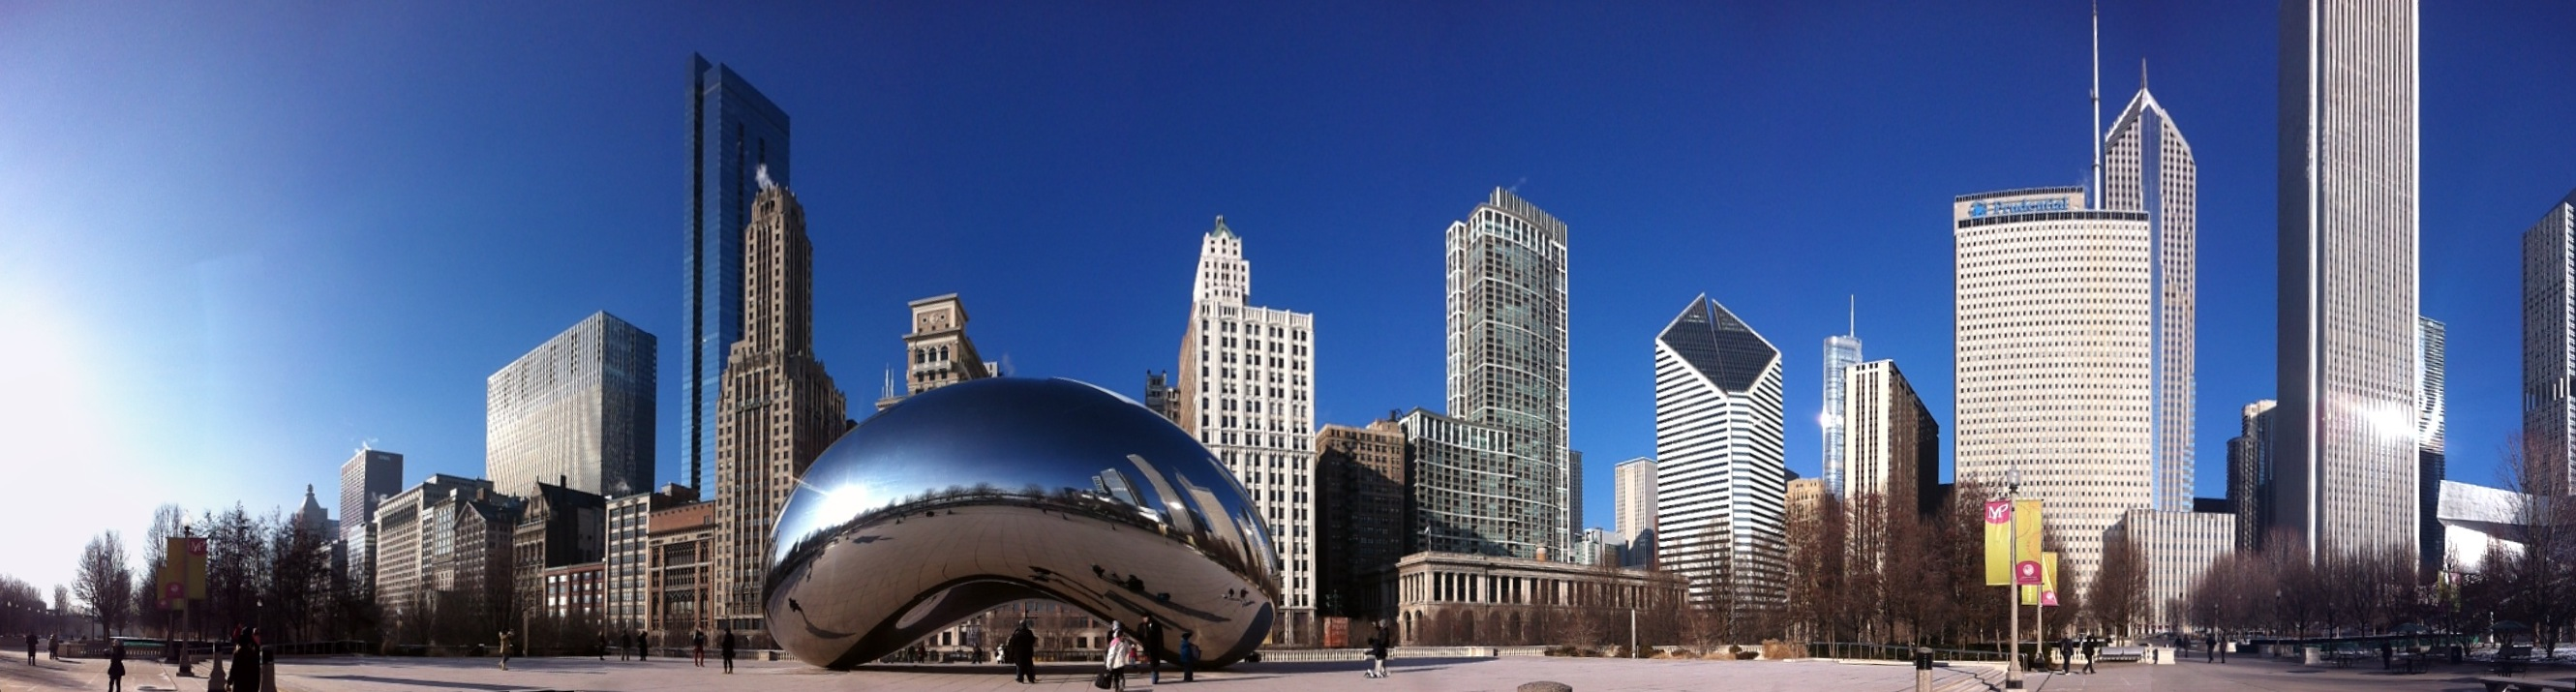 Chicago_Cloud_Gate.jpg